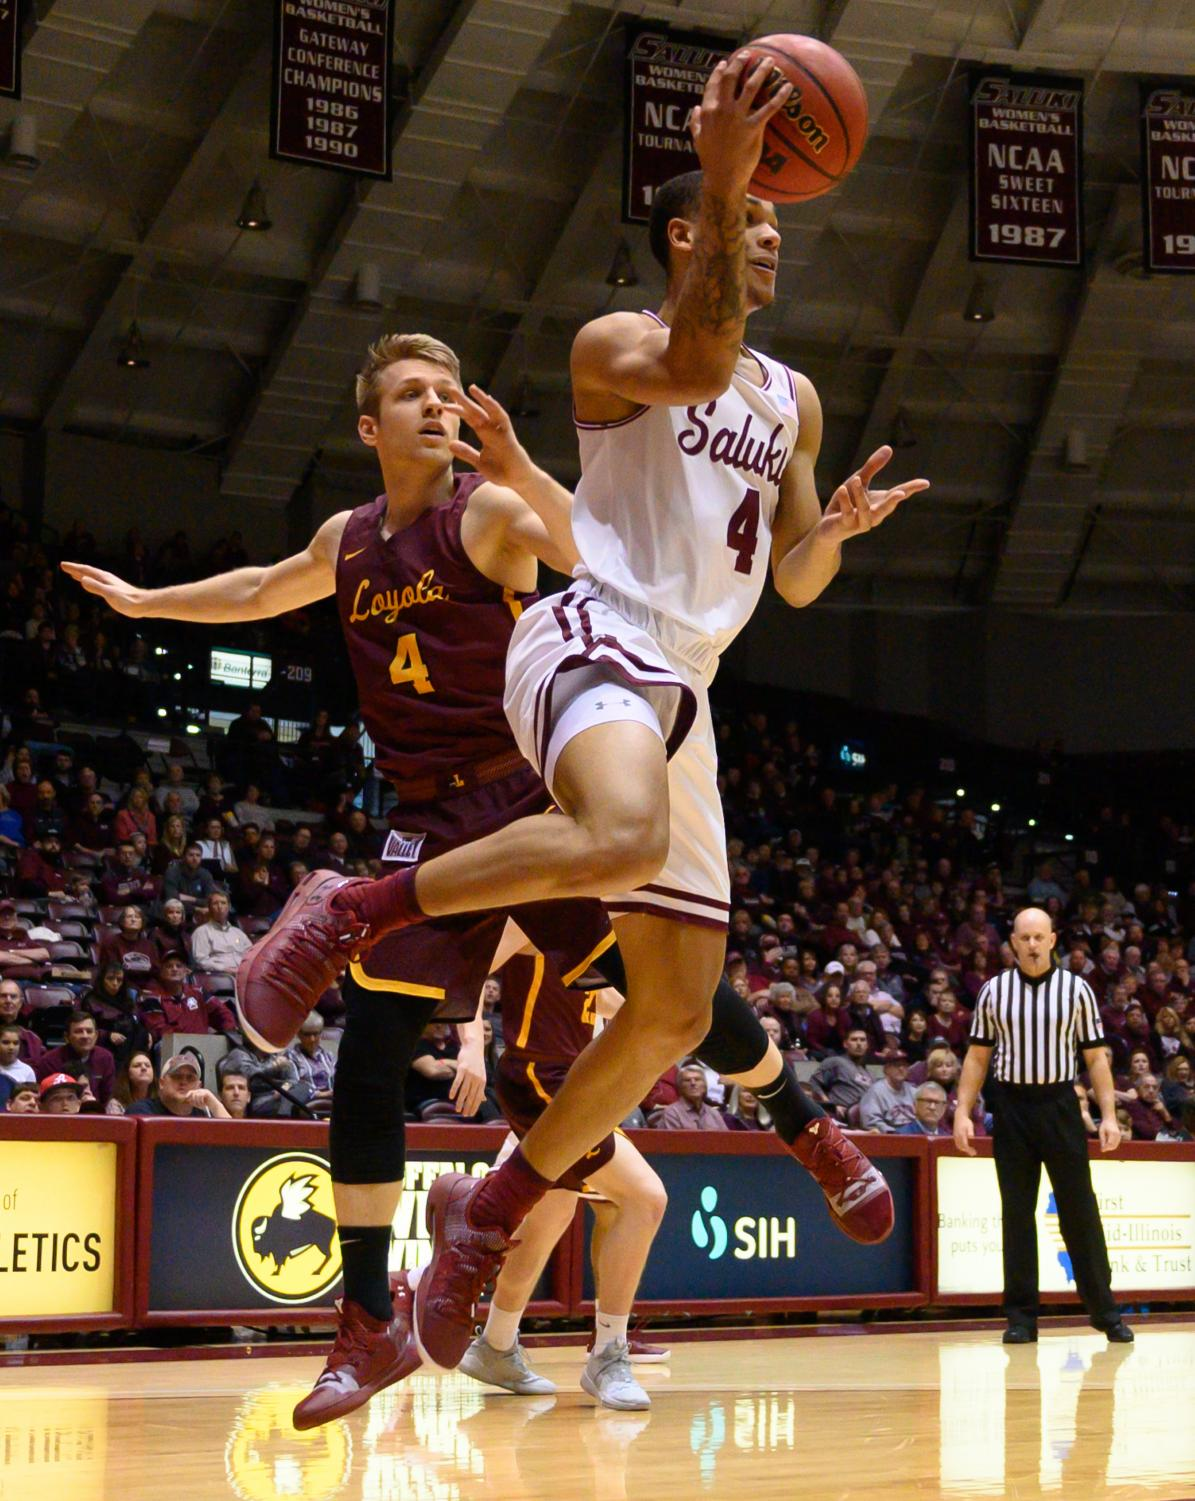 Southern+Illinois+Salukis+guard+Eric+McGill+catches+the+ball+on+Sunday%2C+Feb.+24%2C+2019%2C+during+a+matchup+between+the+Southern+Illinois+Salukis+and+the+Loyola+Ramblers+at+SIU+Arena.